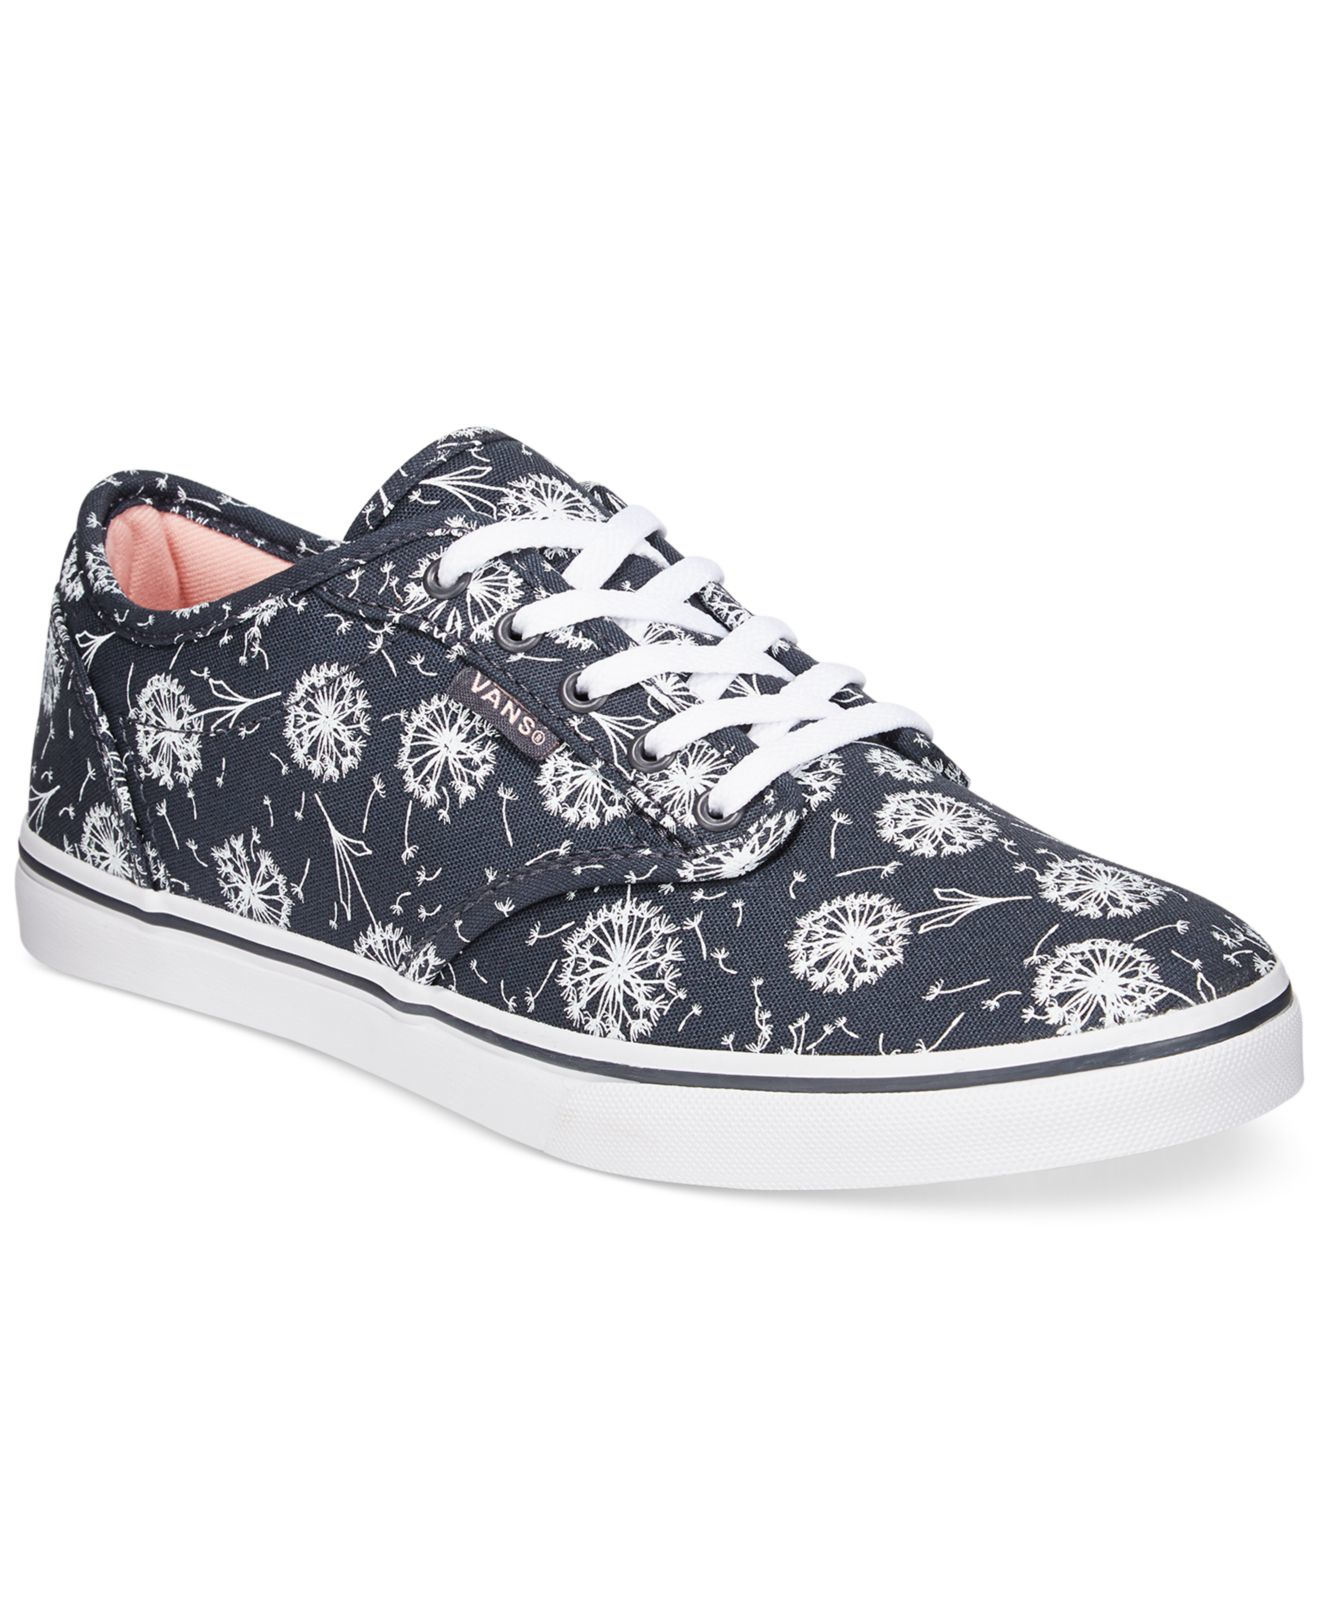 Vans Shoes Atwood Blue White